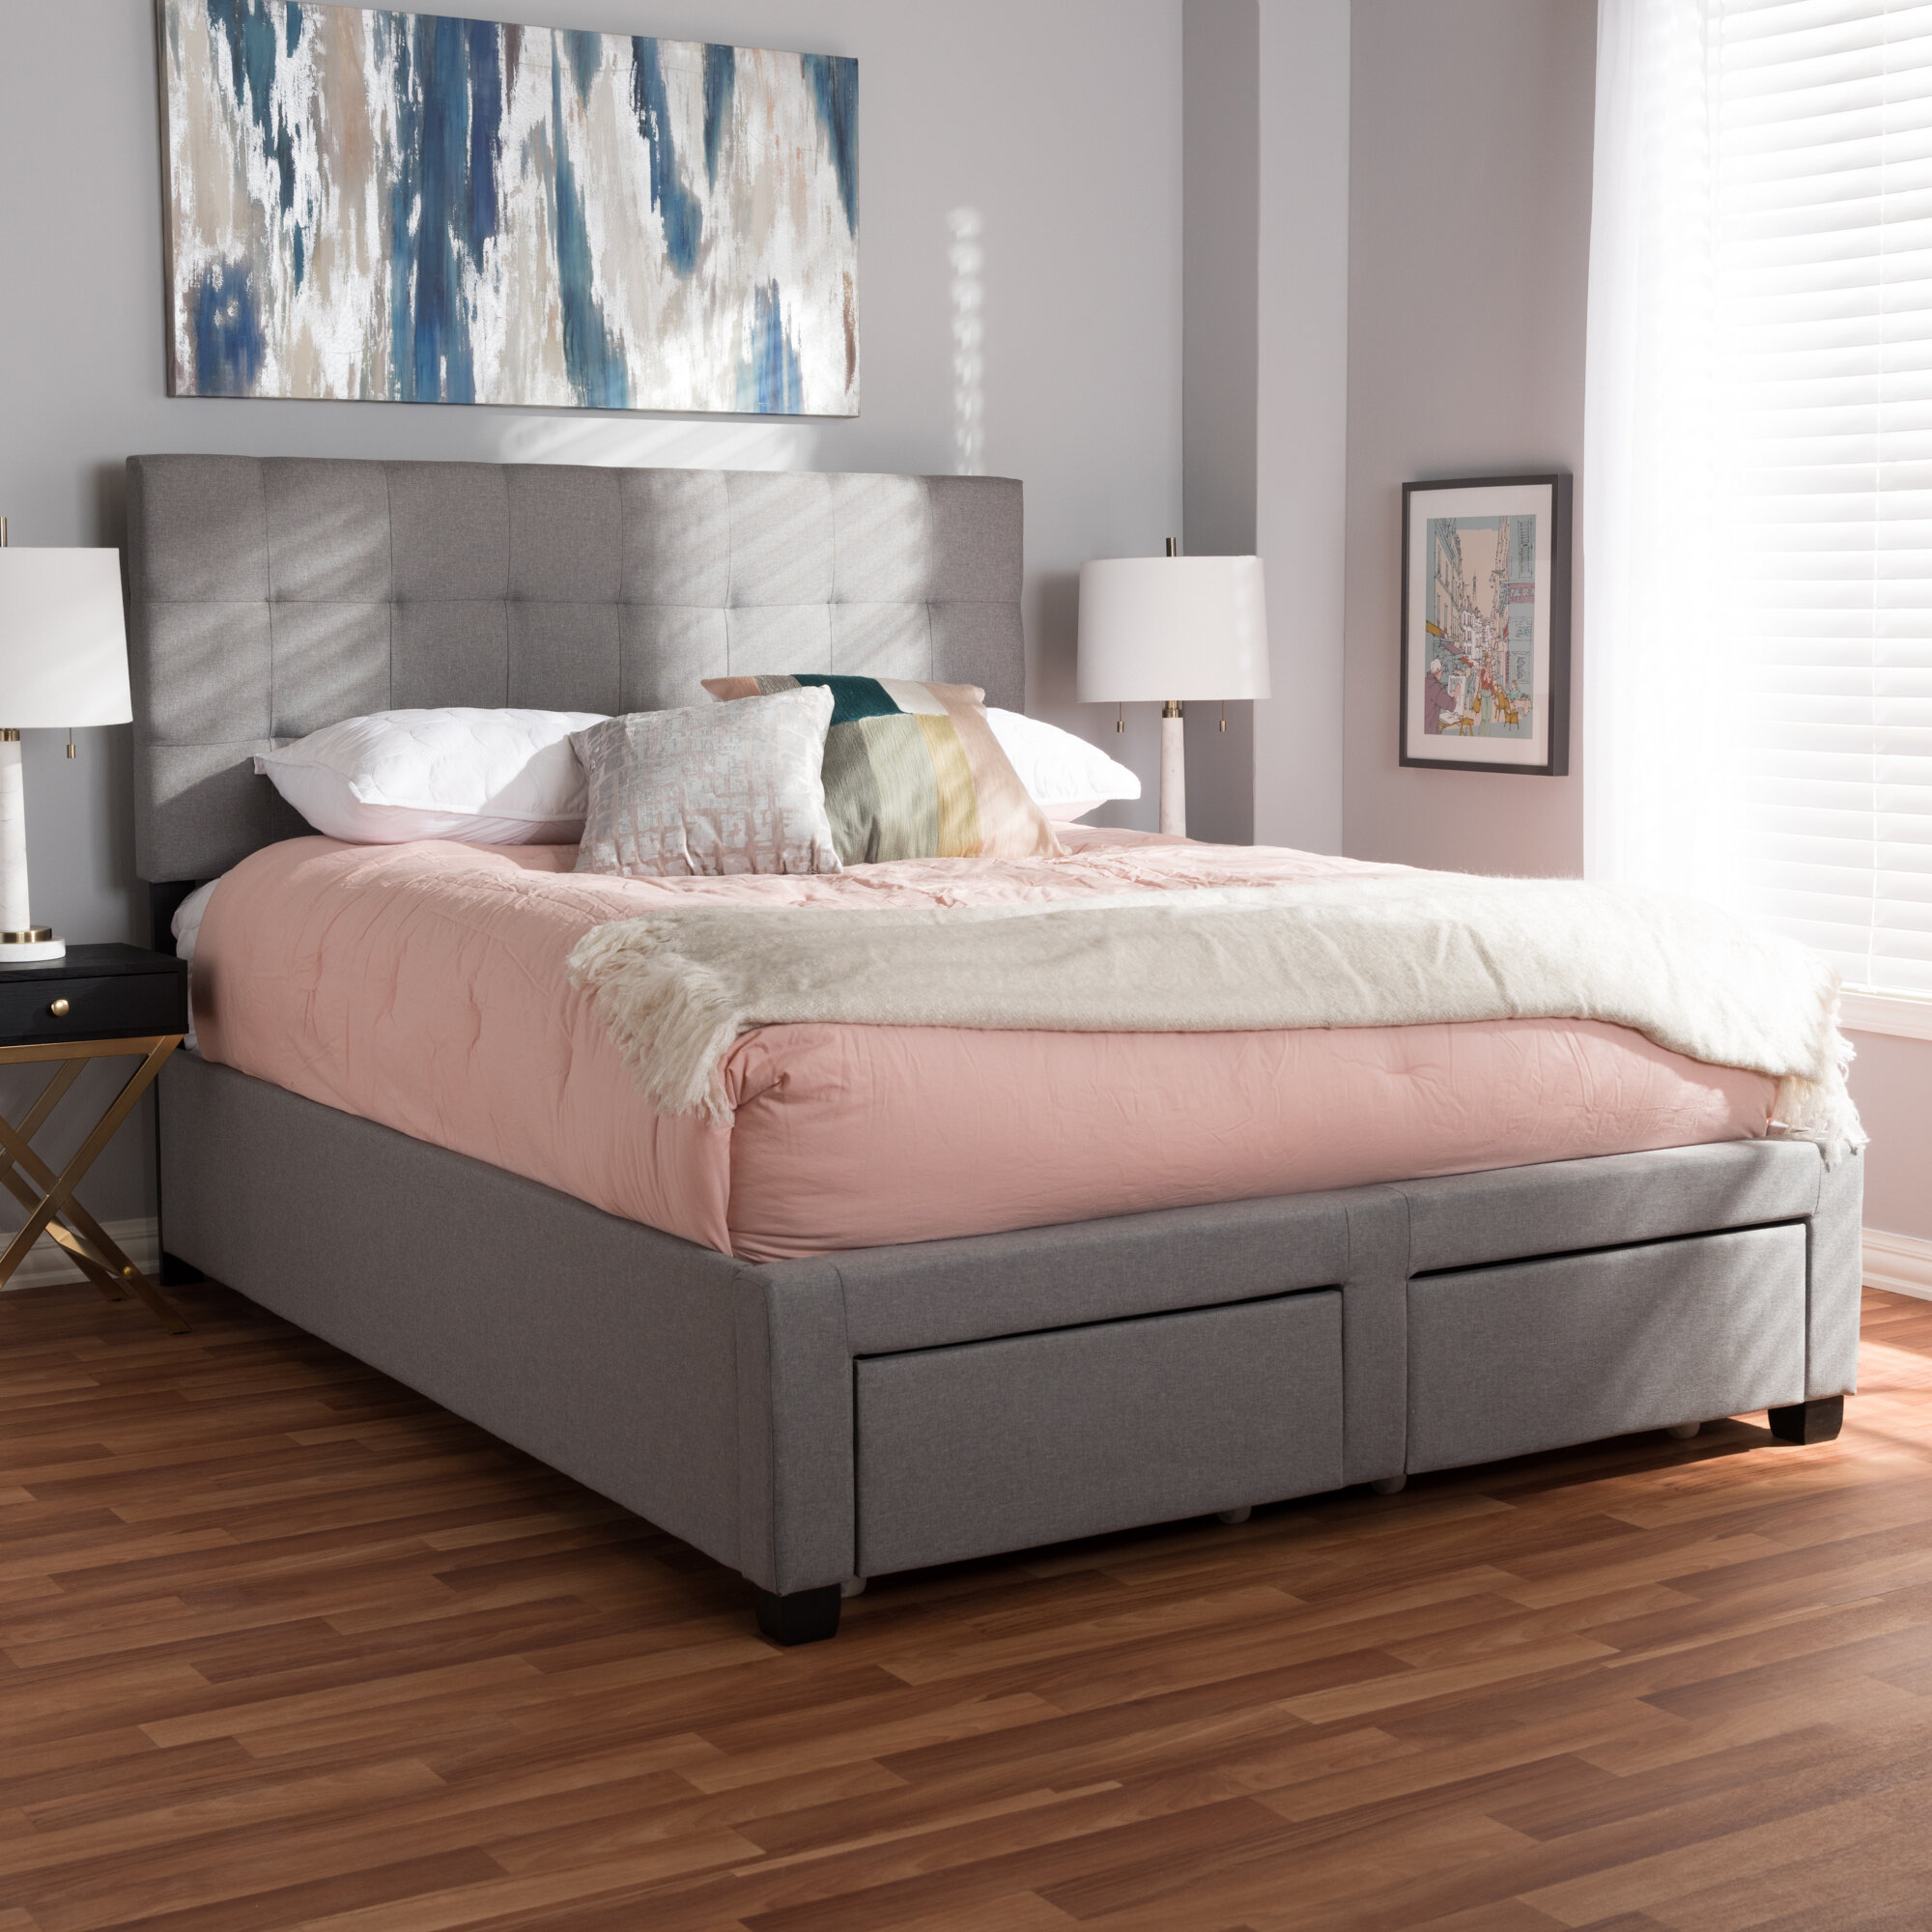 Storage Included Wrought Studio Beds You Ll Love In 2021 Wayfair